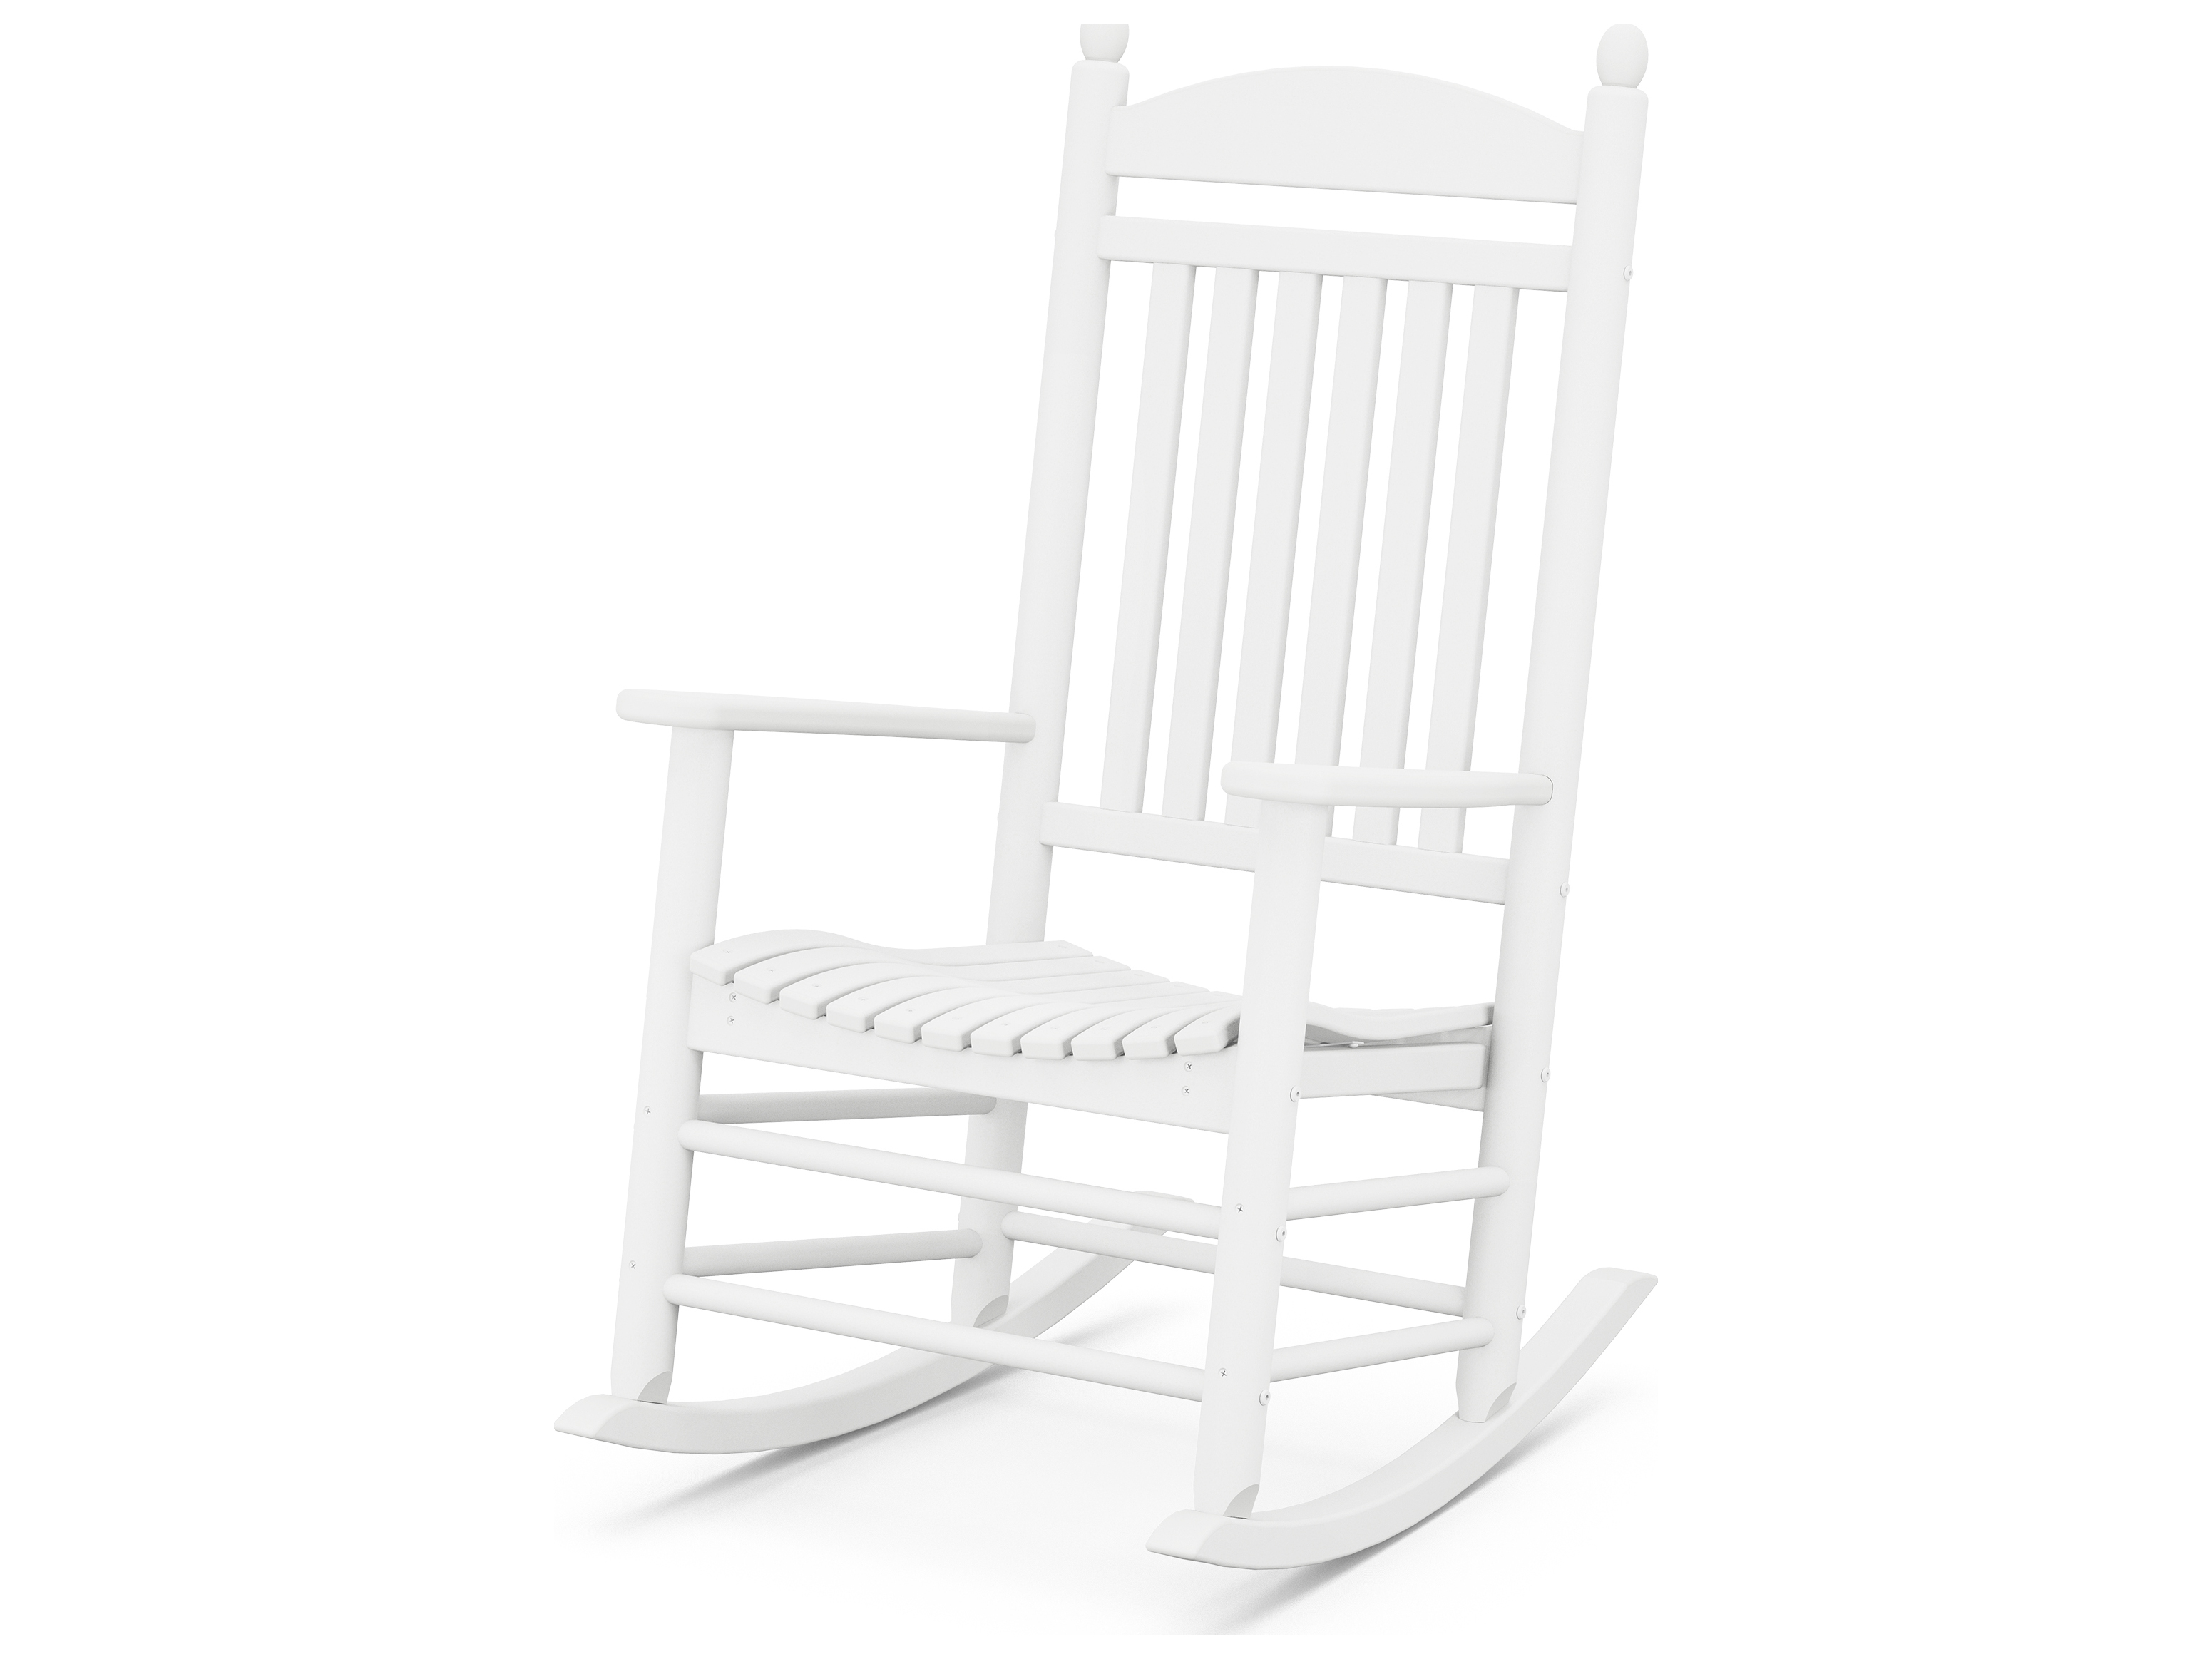 Polywood Rocking Chairs Polywood Rocker Recycled Plastic Arm Lounge Chair J147